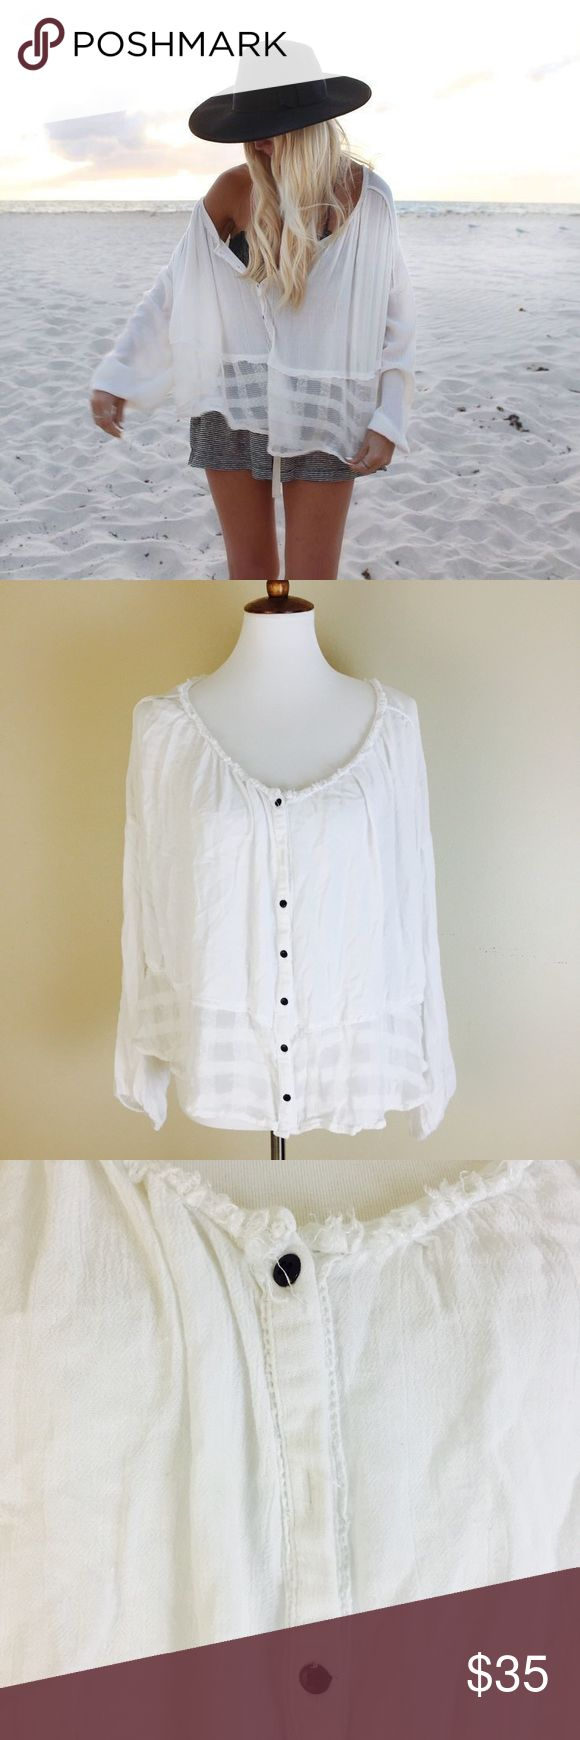 """Free People Rainy Days Gauze Top Boho Brand: Free People Details: Rayon loose gauze rainy days top. Perfect festival blouse. Ivory white Size: Large Measures approx 30"""" from underarm to underarm and 20-23"""" in length Gently pre-owned and ready to wear, missing a button though. Easy fix  Thanks for looking! Free People Tops Blouses"""